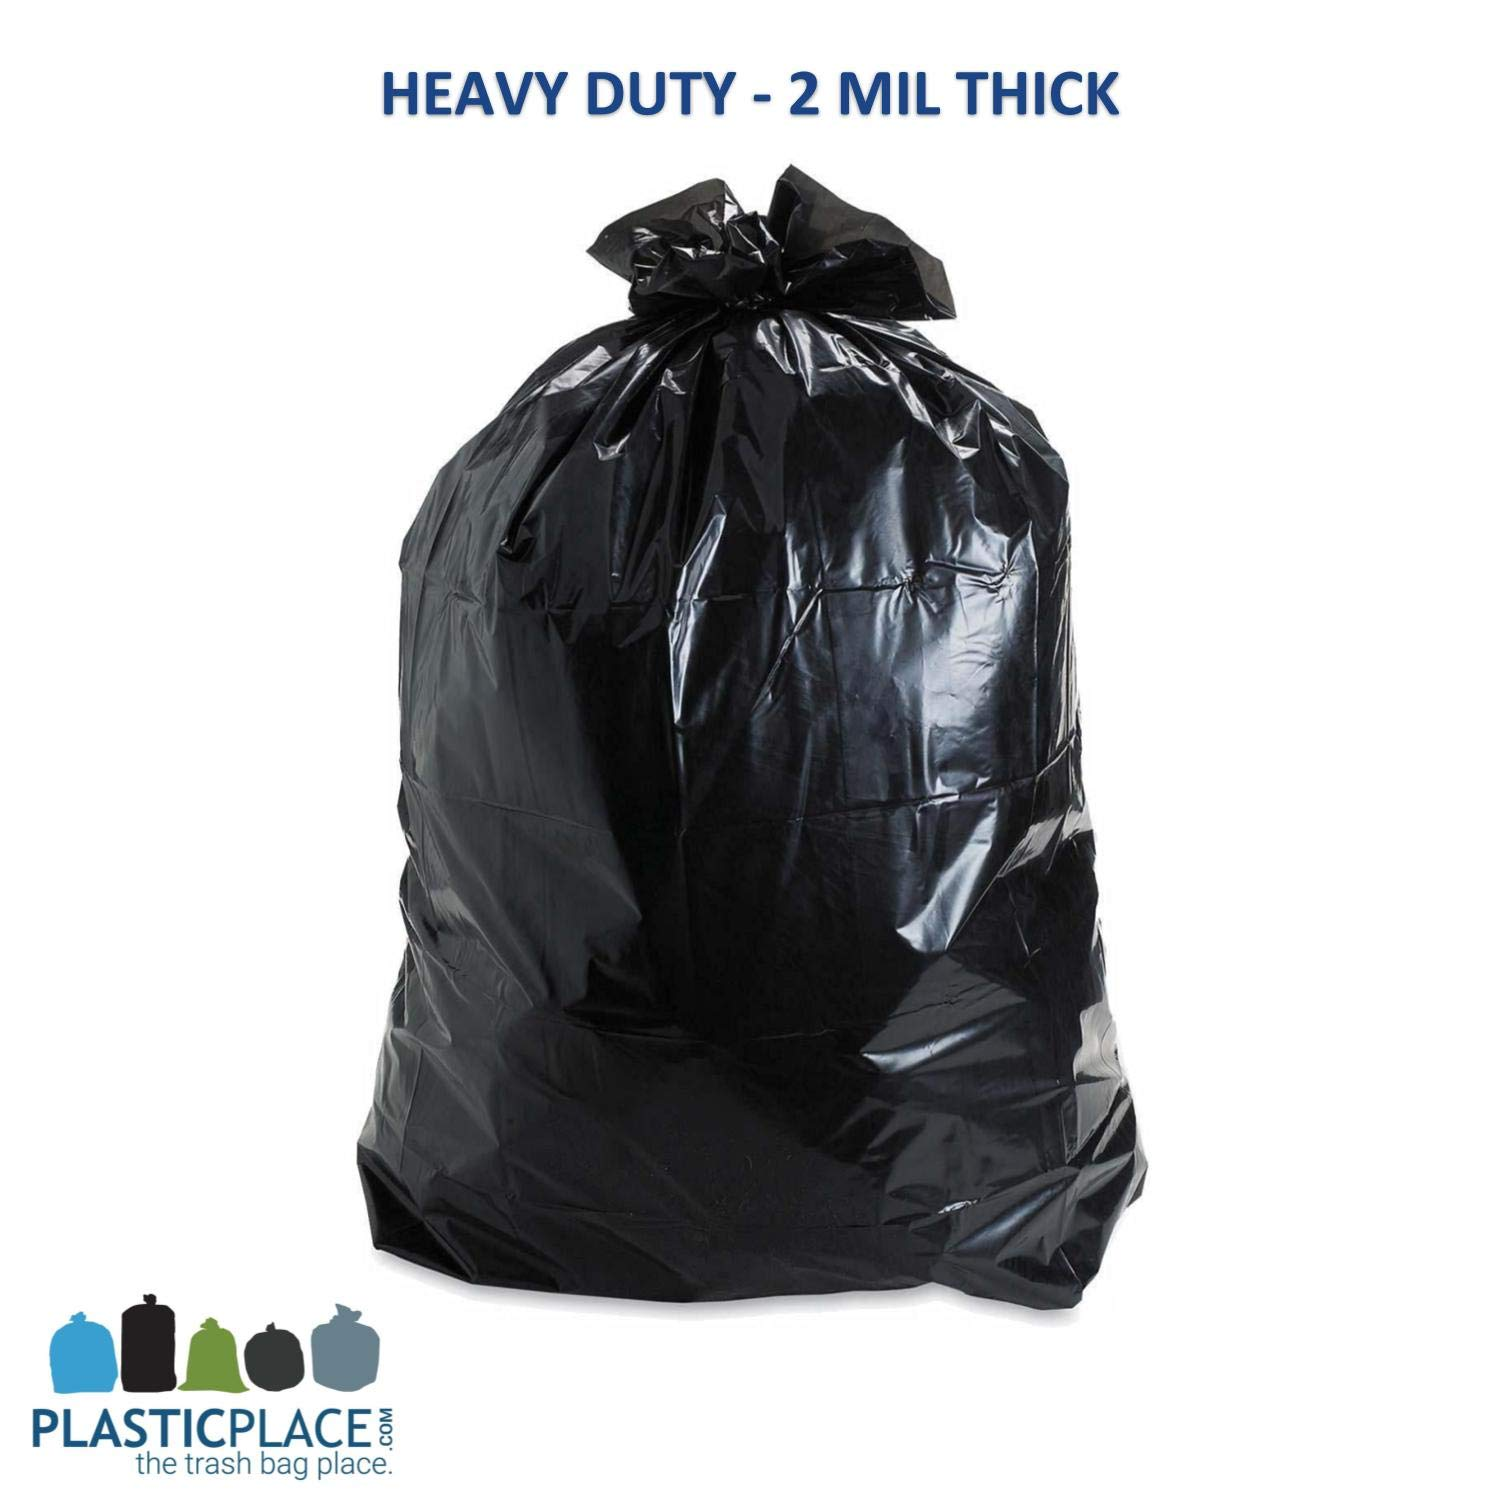 Trash Duty For Students With Special >> Plasticplace 95 96 Gallon Garbage Can Liners 2 Mil Black Heavy Duty Trash Bags 61 X 68 25 Count